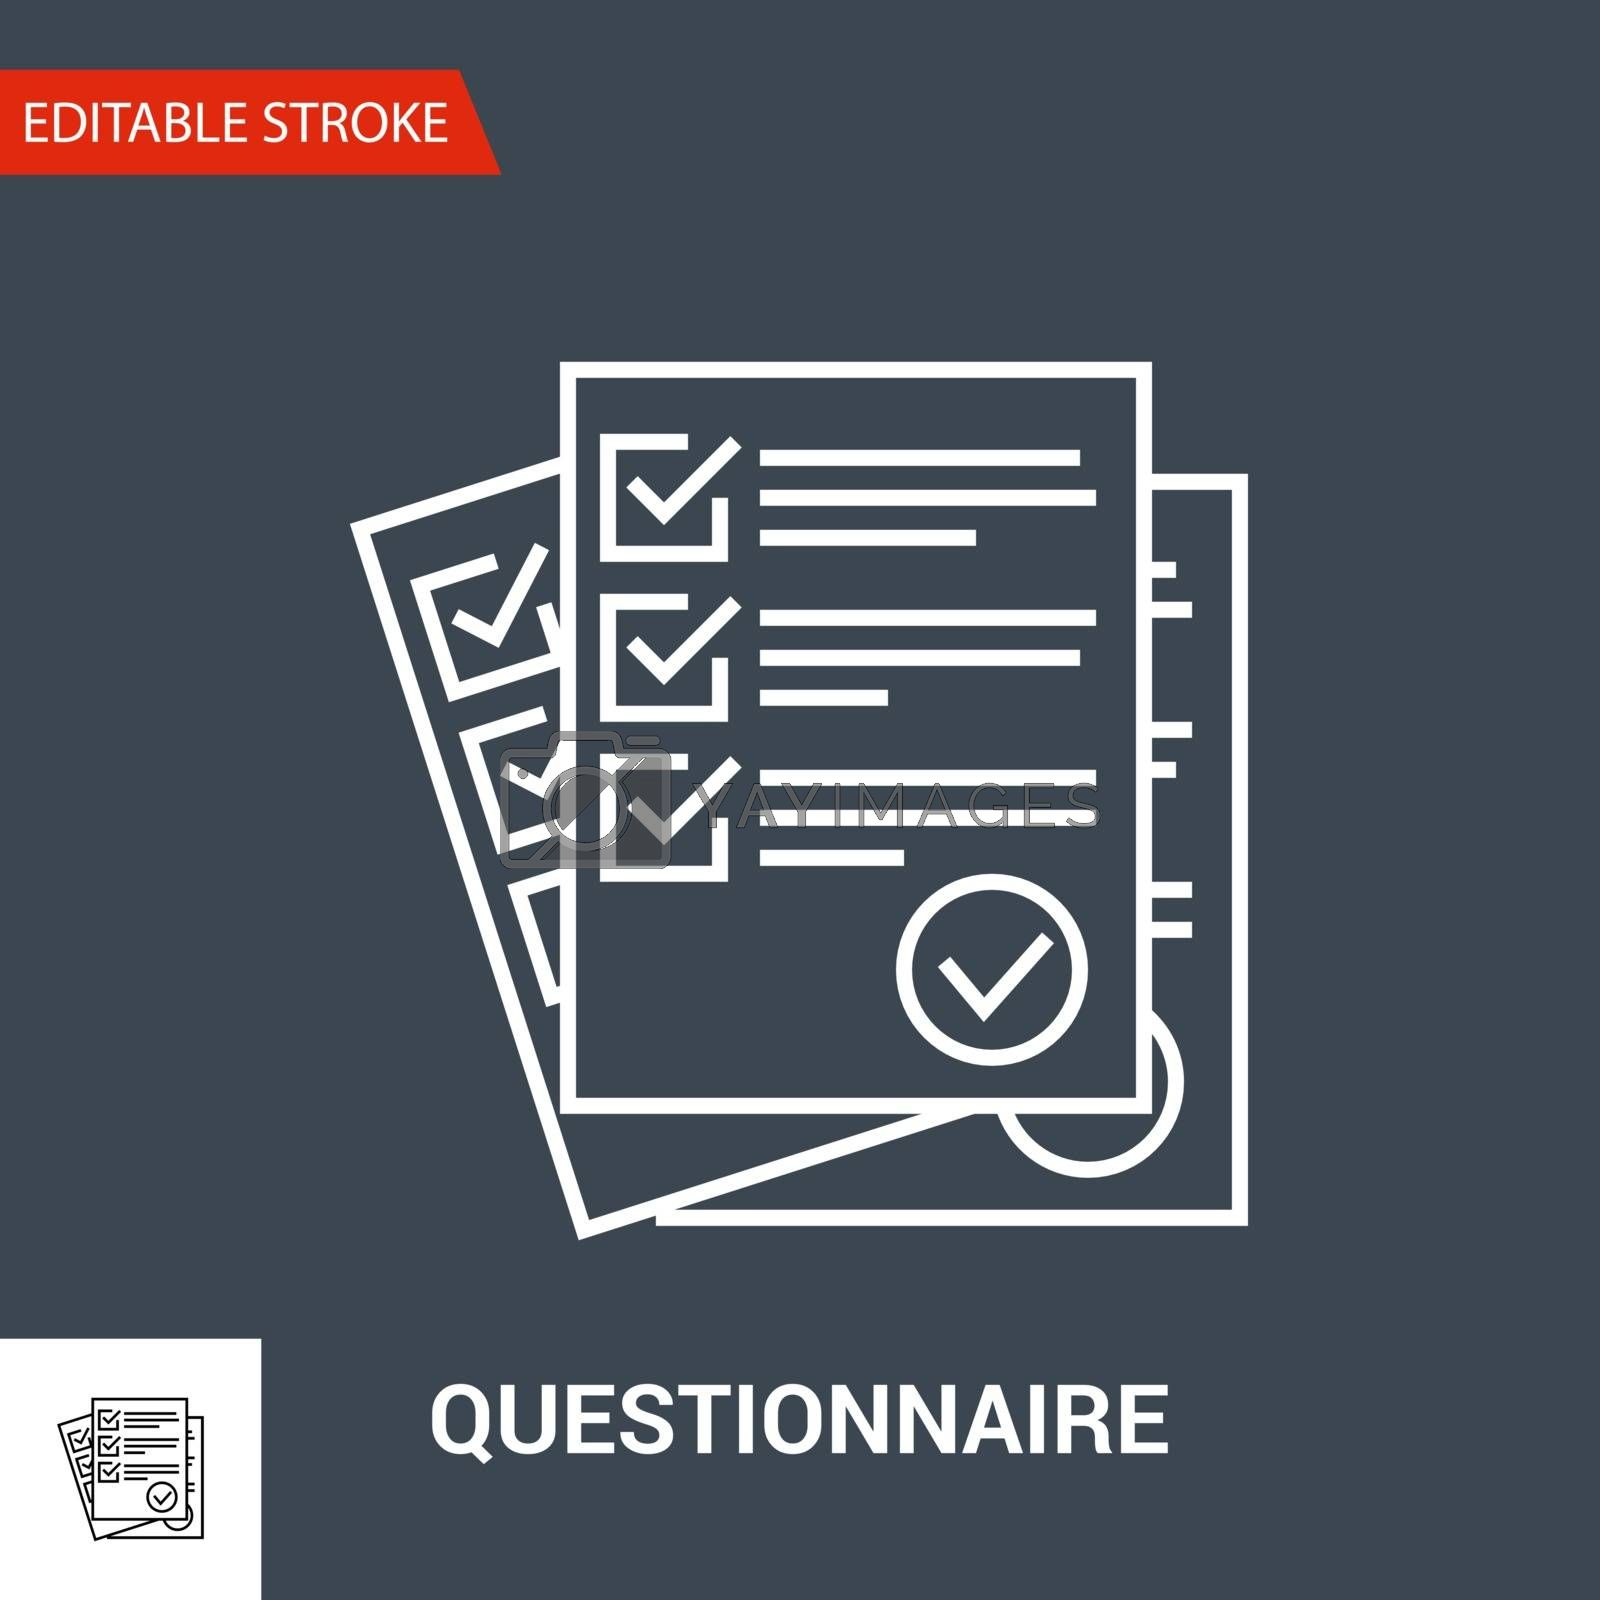 Questionnaire Icon. Thin Line Vector Illustration - Adjust stroke weight - Expand to any Size - Easy Change Colour - Editable Stroke